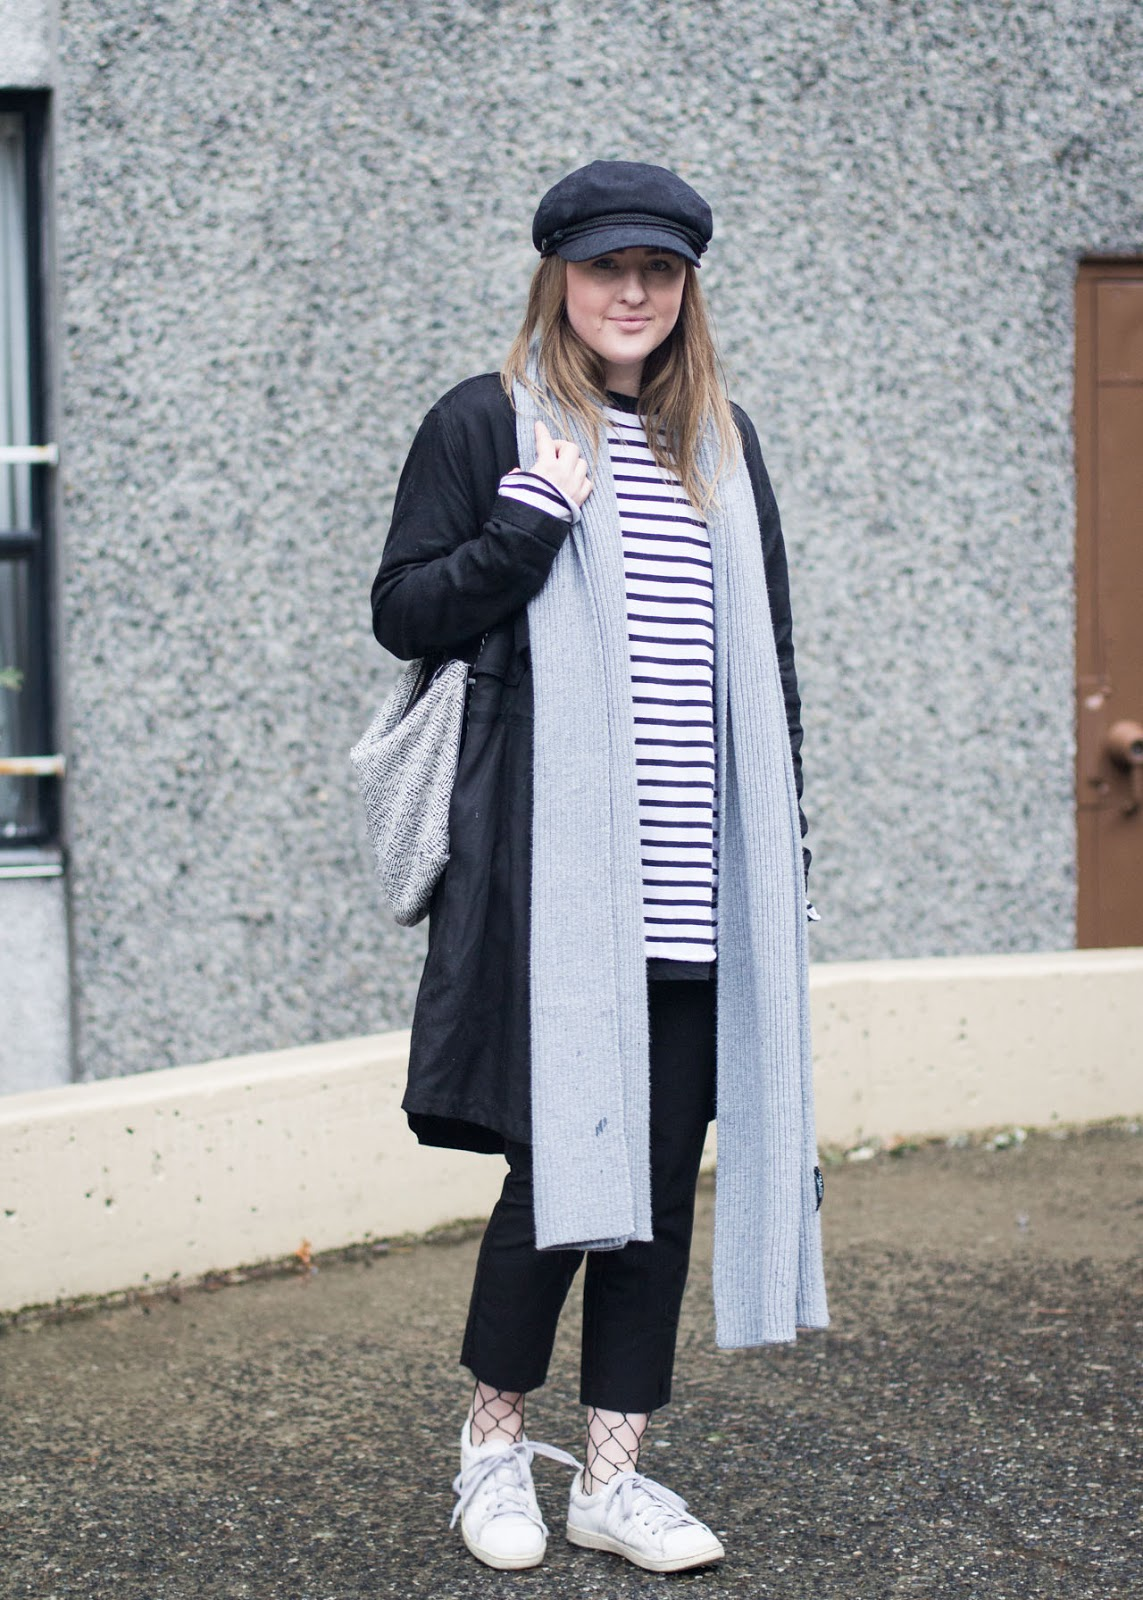 Positive mindset for 2017 - Vancouver Fashion Blogger - Winter outfit